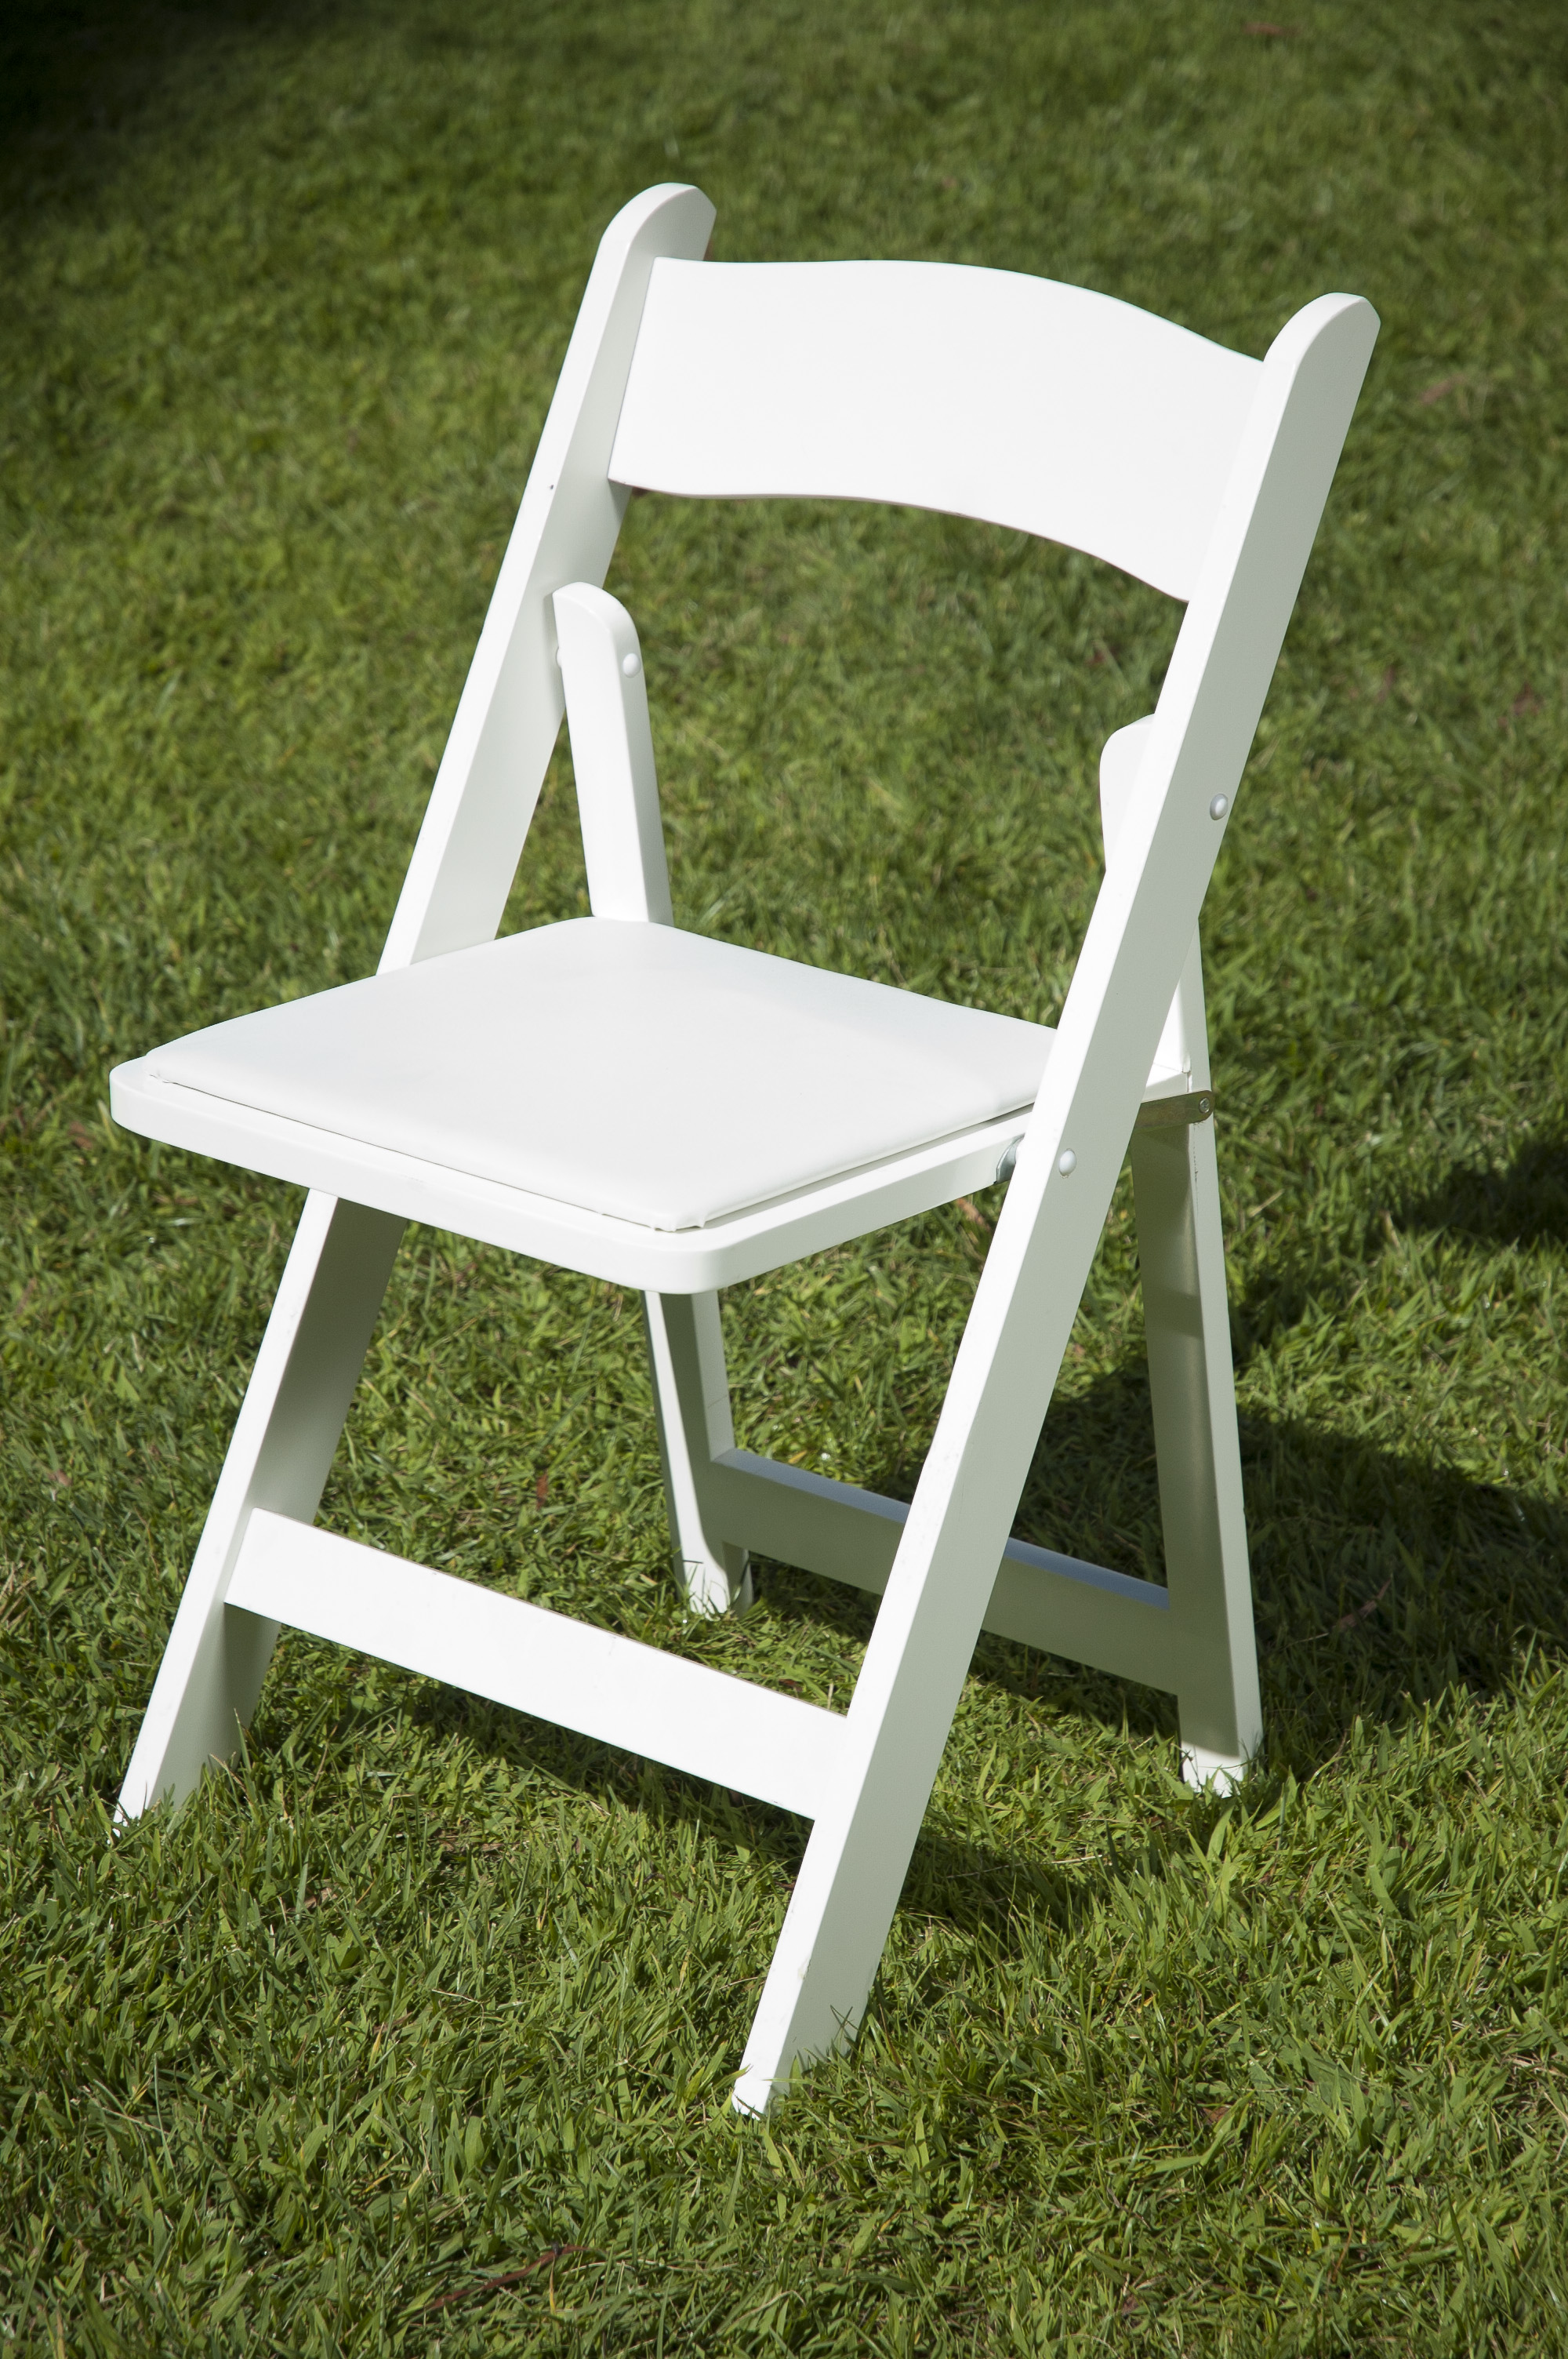 Luxury White Wooden Folding Chairs Elegant